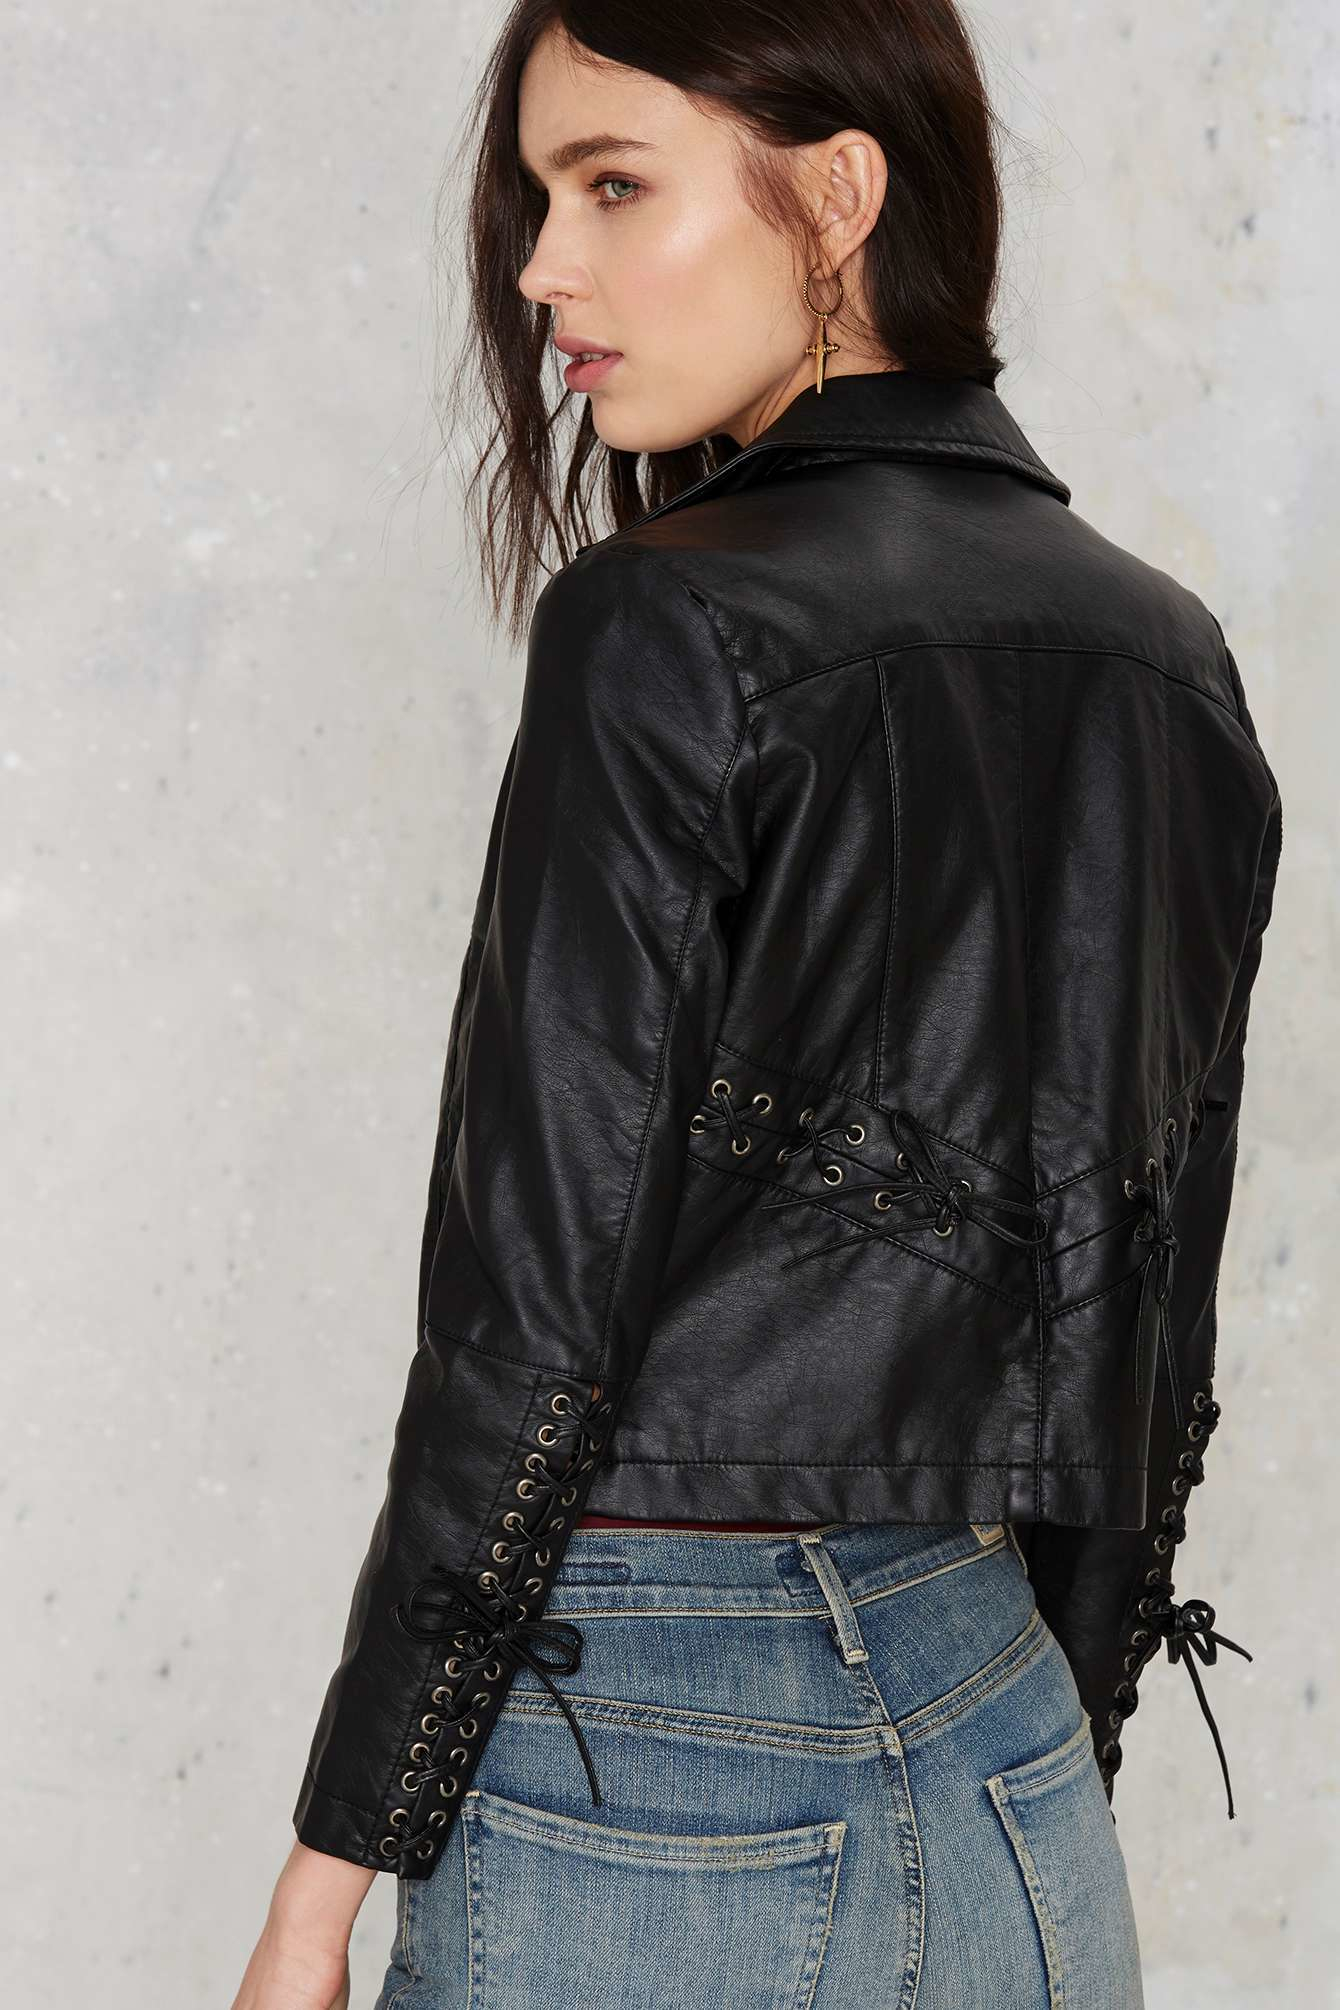 bac44645571 Lyst - Nasty Gal Brooklyn Lace-up Vegan Leather Jacket in Black